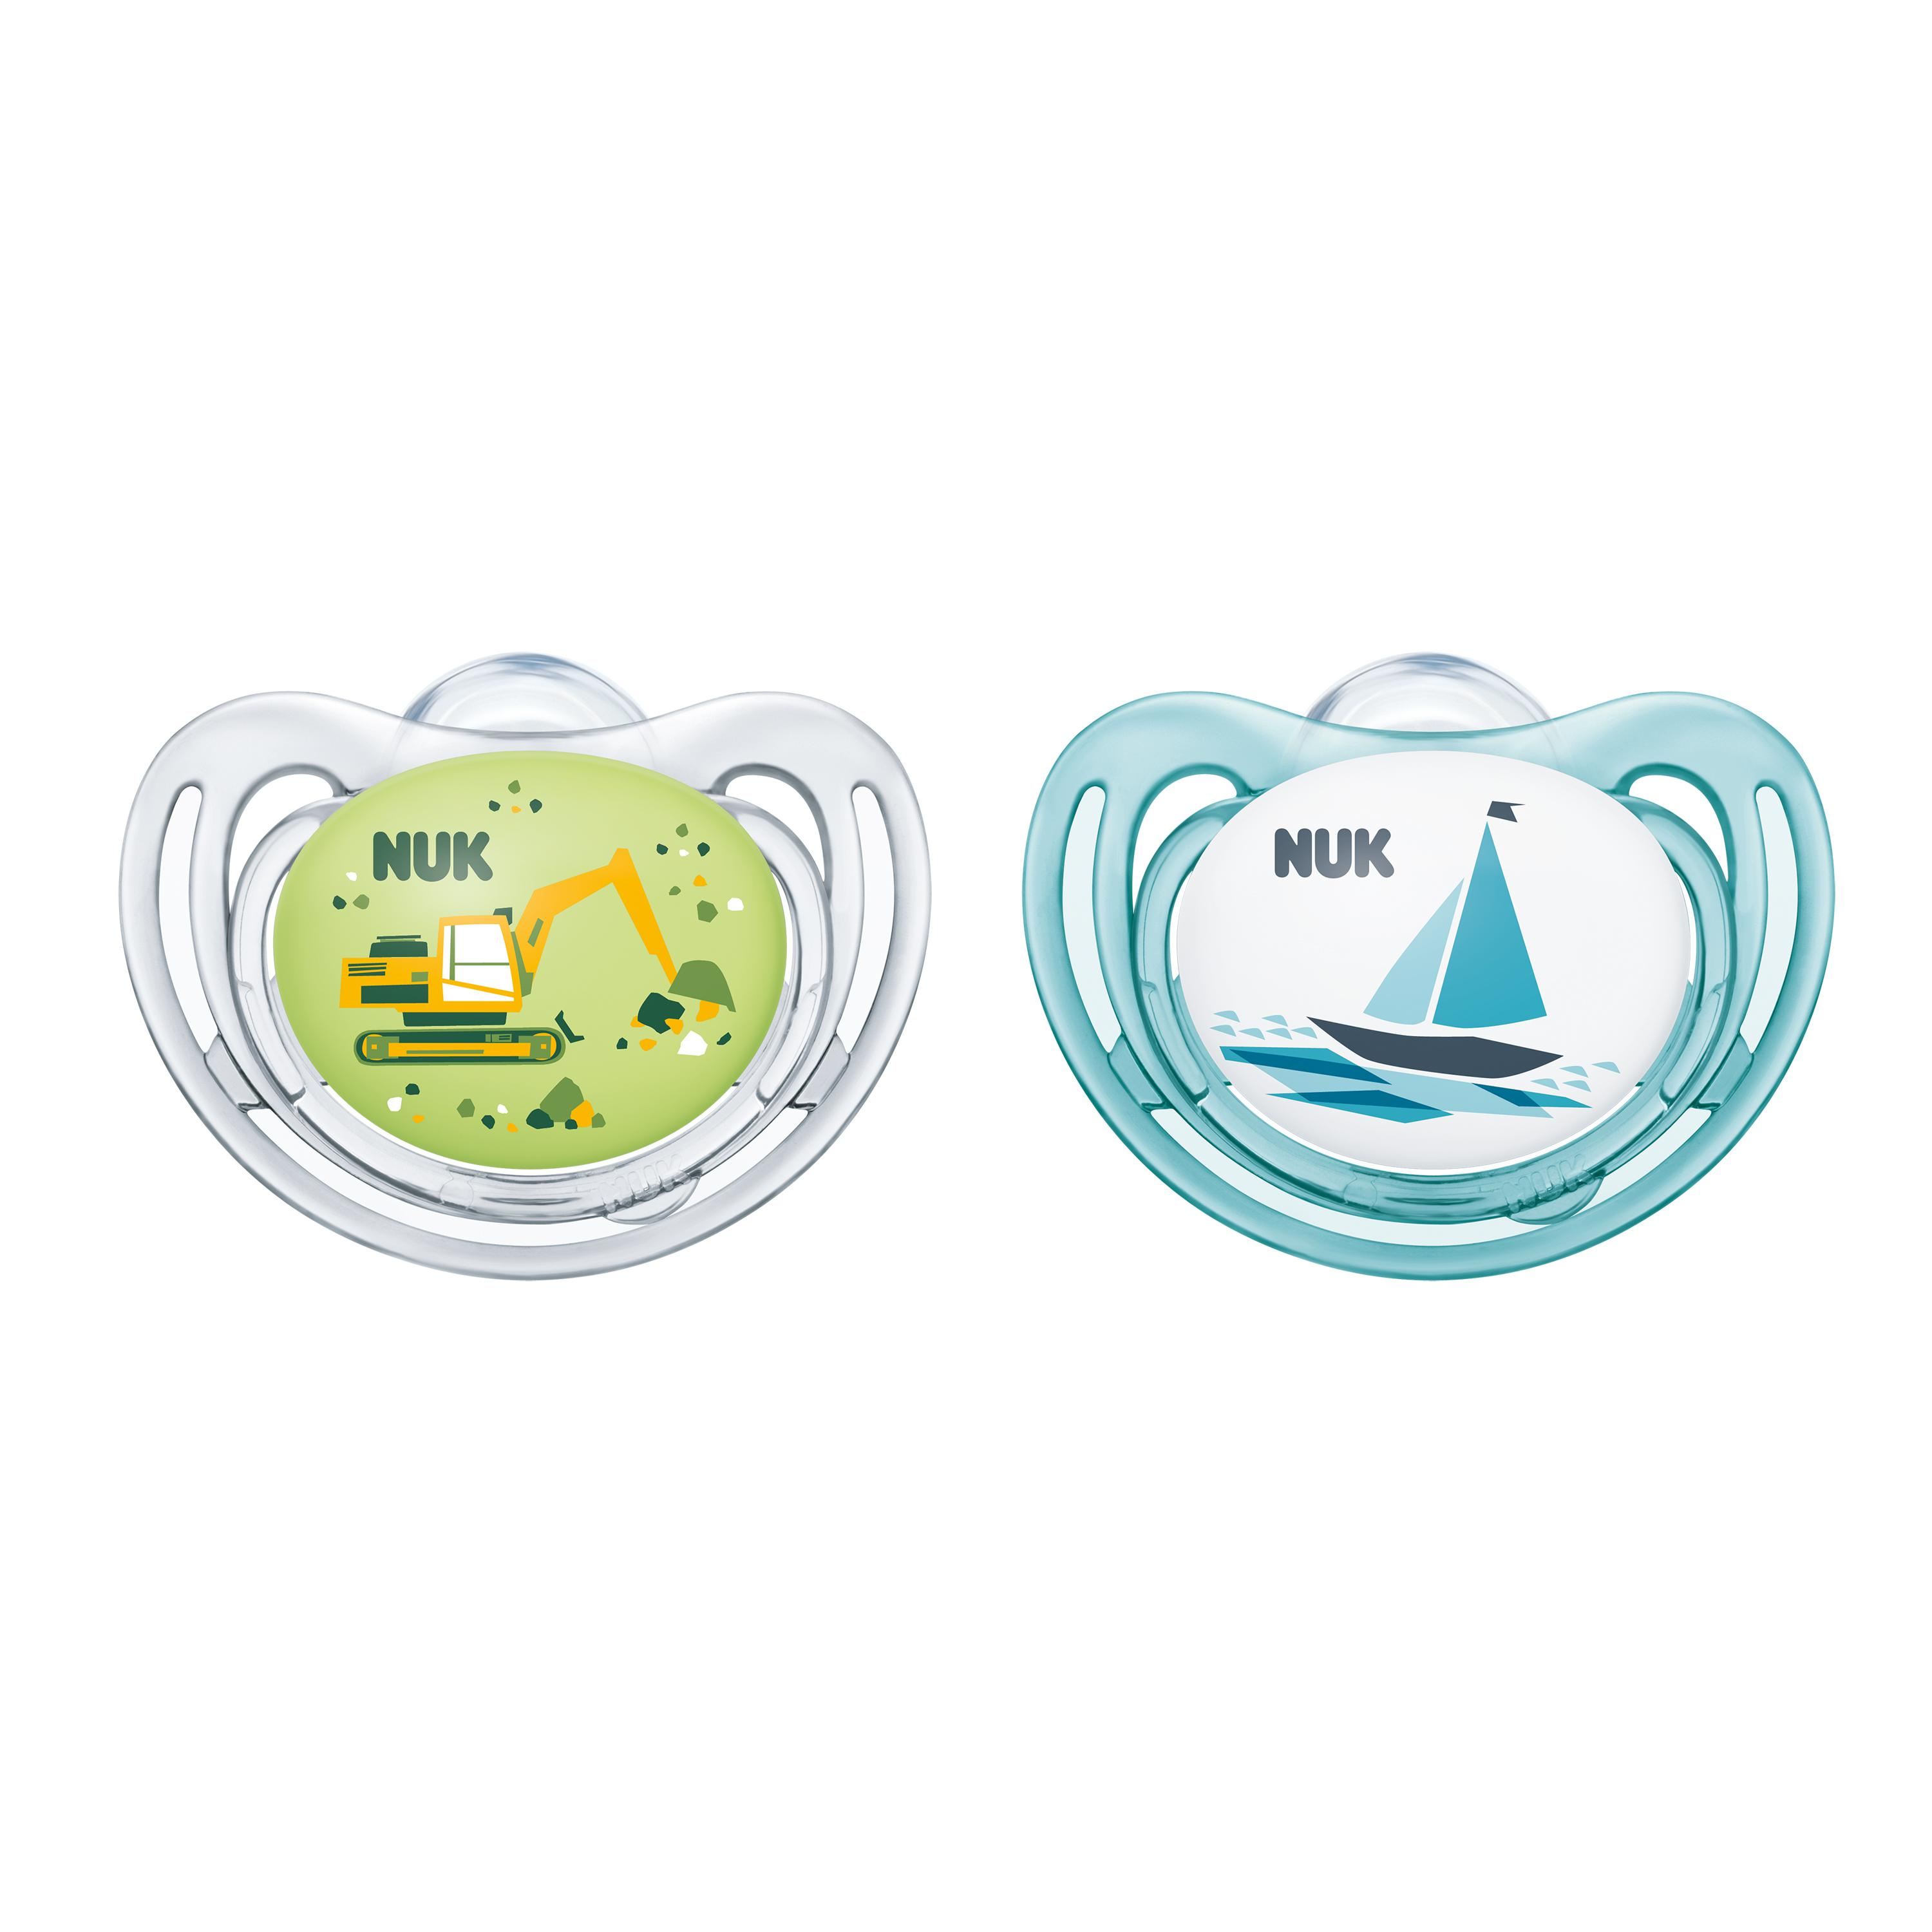 NUK® Airflow Orthodontic Pacifiers, 6-18 Months, 2-Pack Product Image 2 of 3